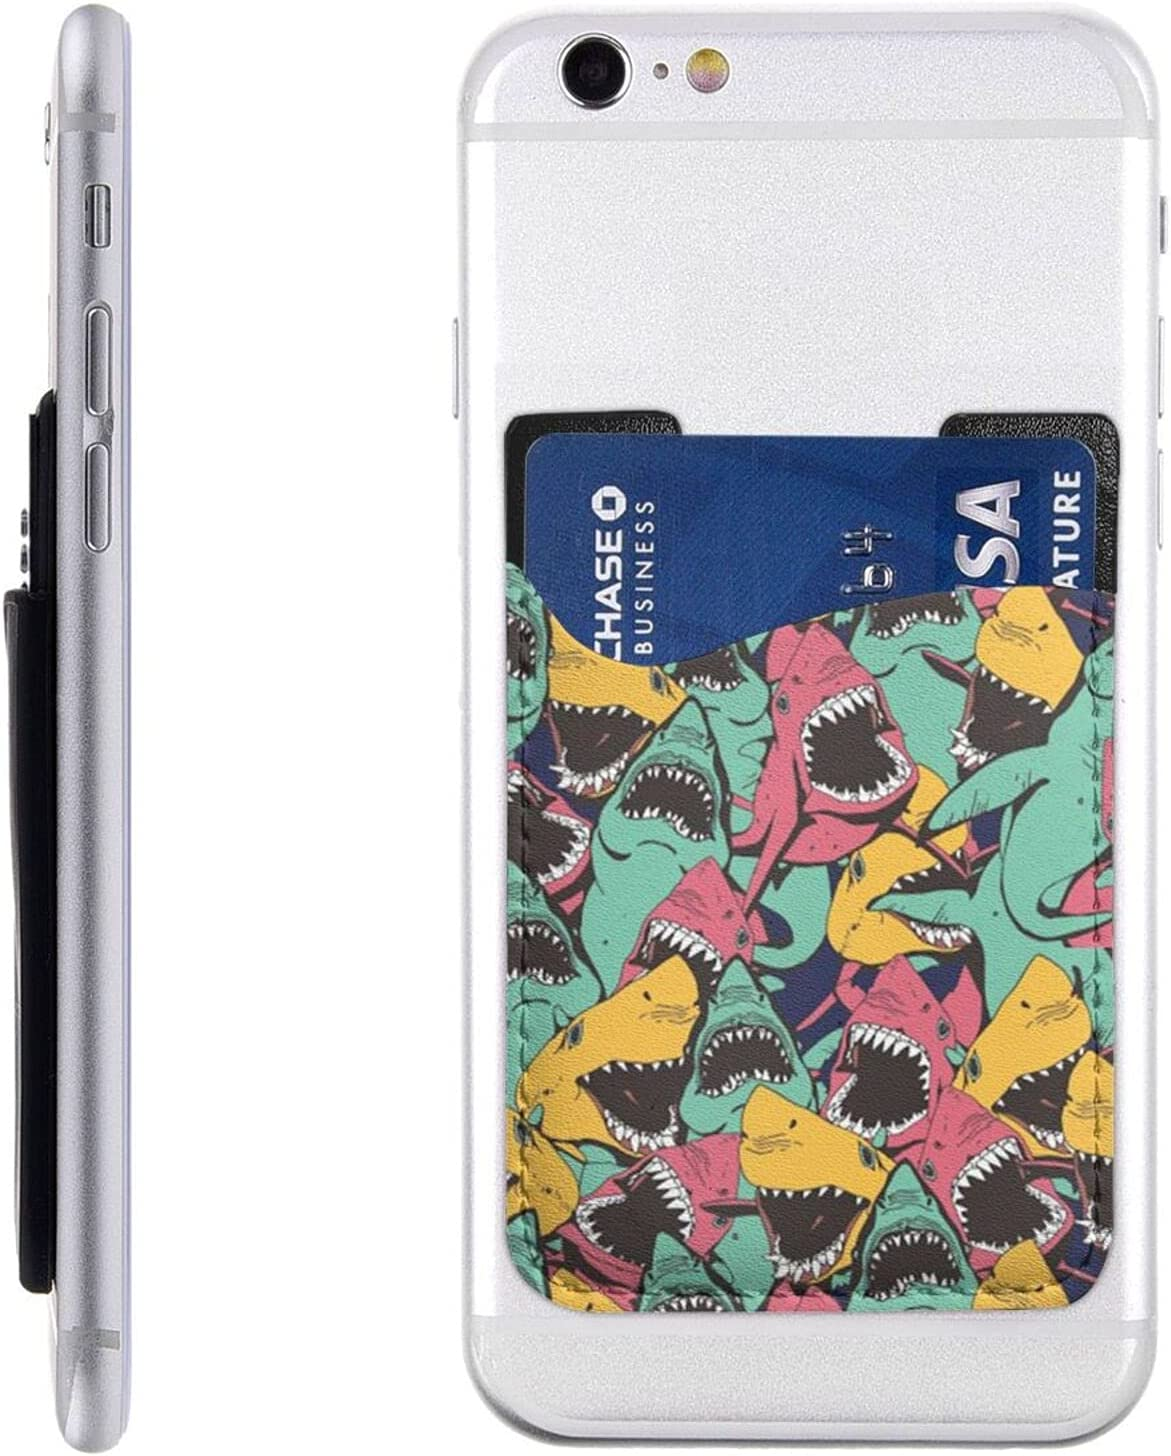 Fish Pattern Fashionable depot Phone Card Holder Cell On S Stick Wallet